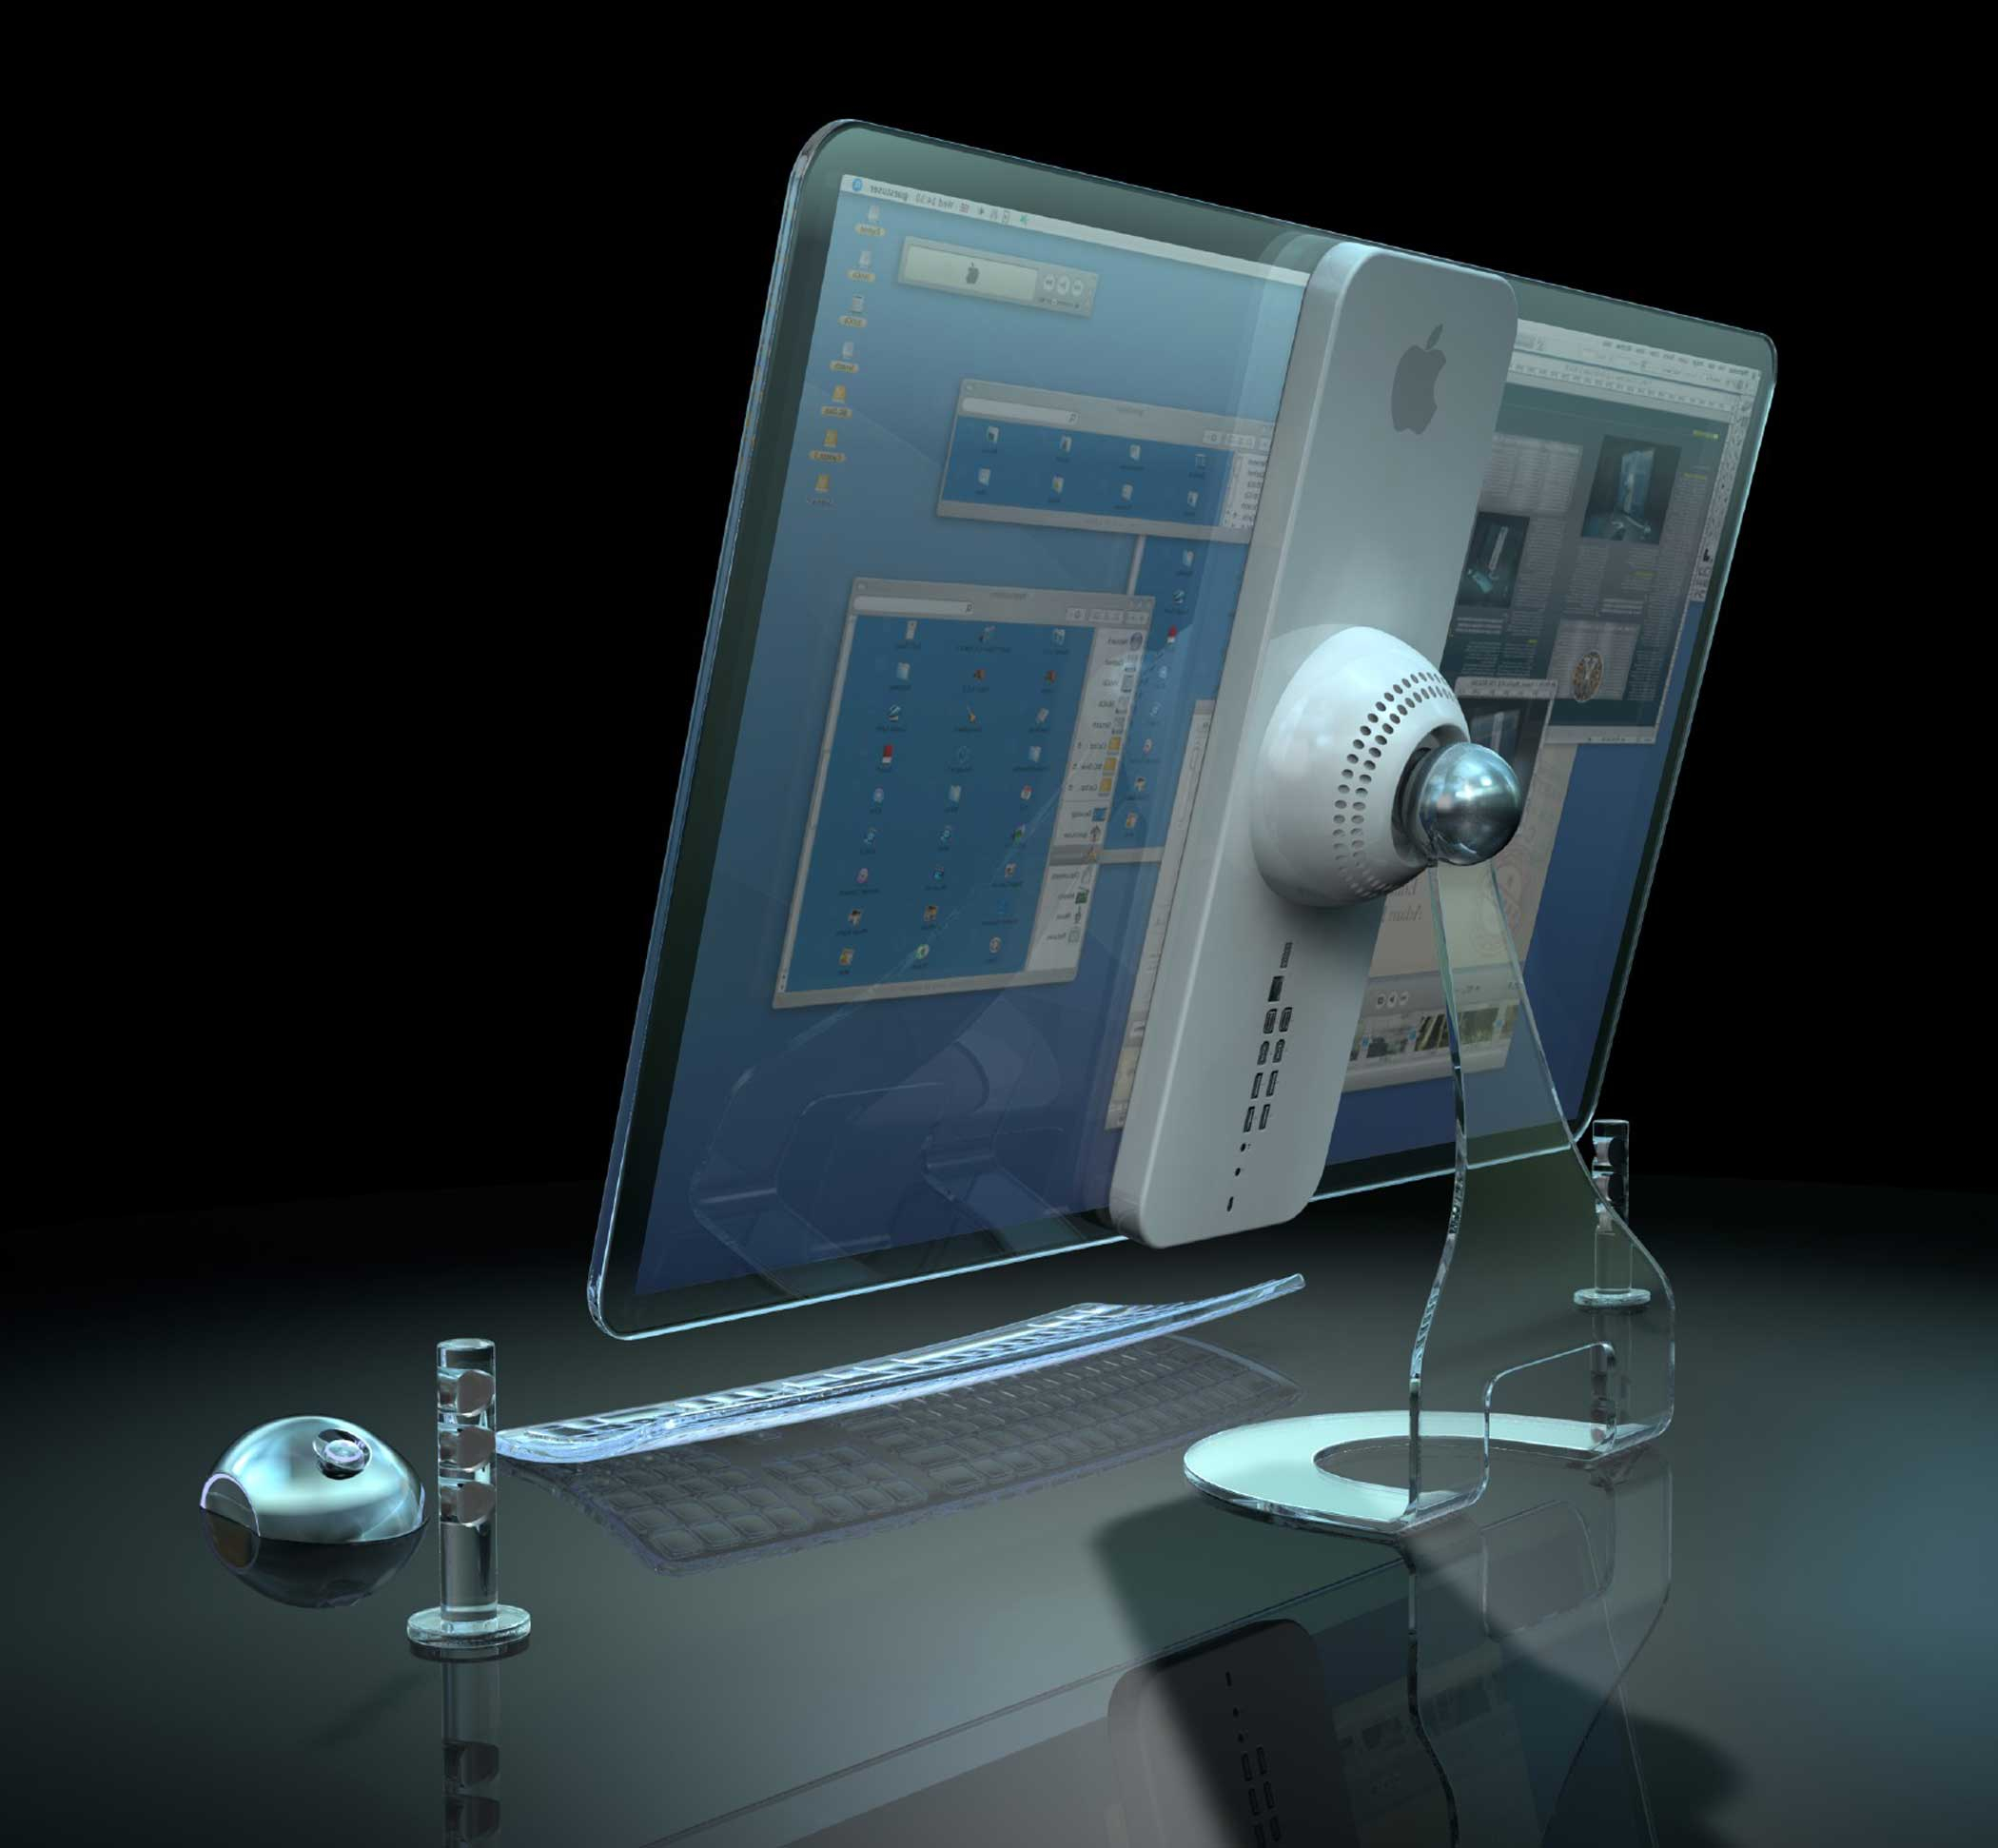 2008: Transparent iMac This transparent iMac screen would be paired with a wireless keyboard with glowing light-sensitive keys.